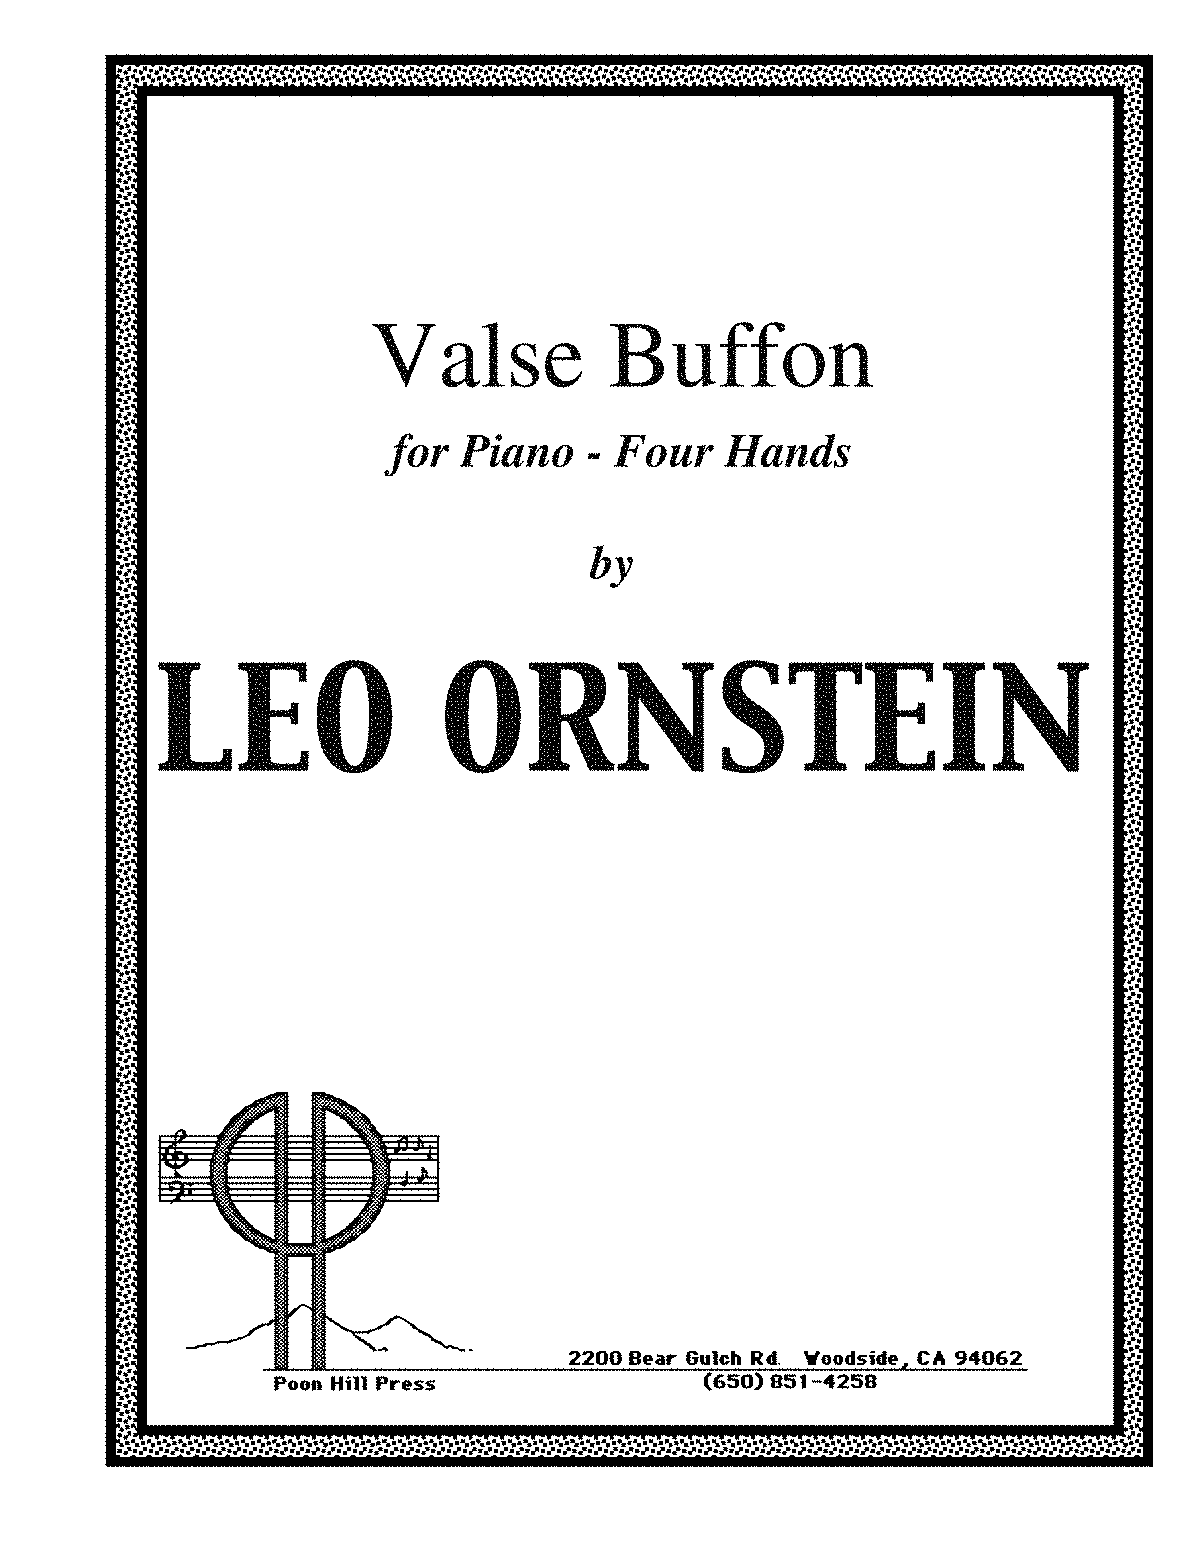 S551 - Valse Buffon.pdf